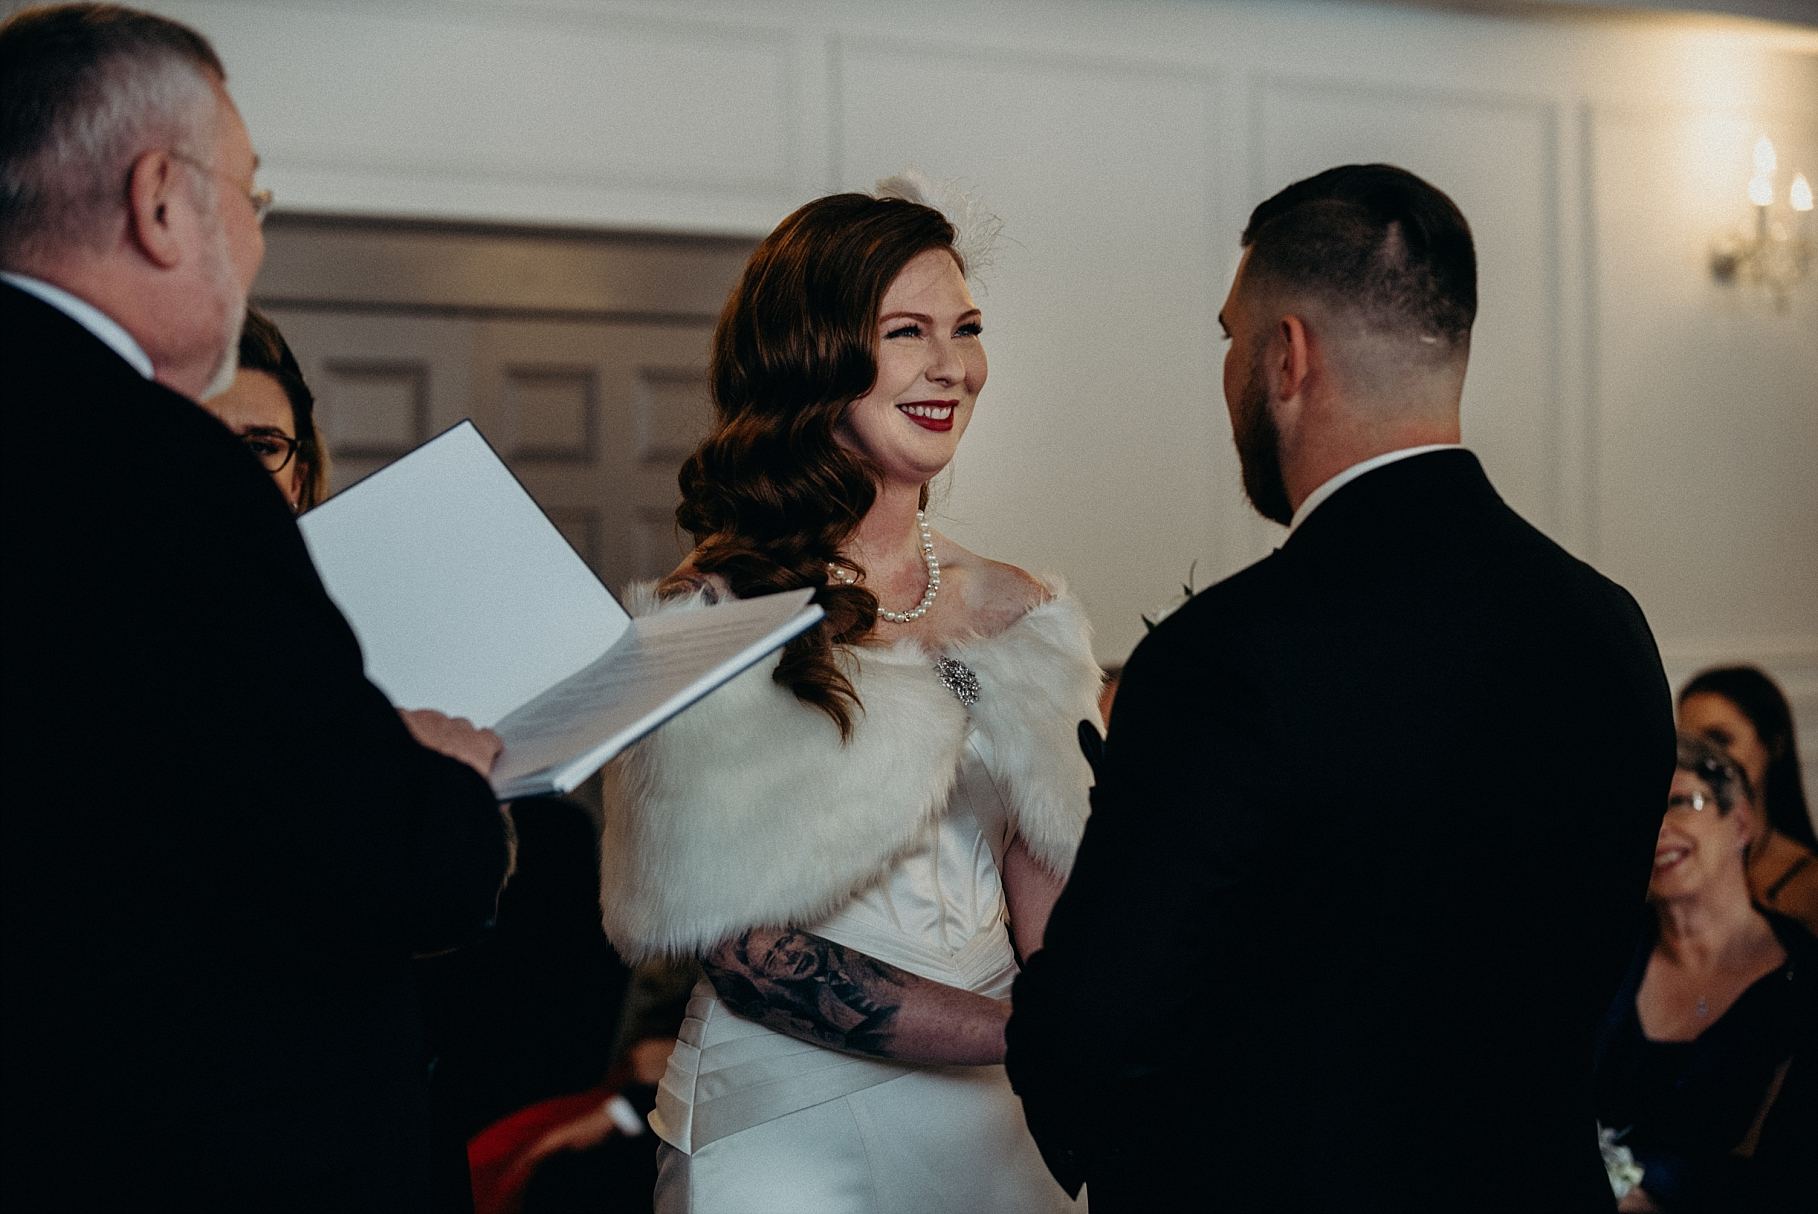 Orchard View Wedding by Mocha Tree Studios Ottawa Wedding and Engagement Photographer and Videographer Dark Moody Intimate Authentic Modern Romantic Cinematic Best Candid 13